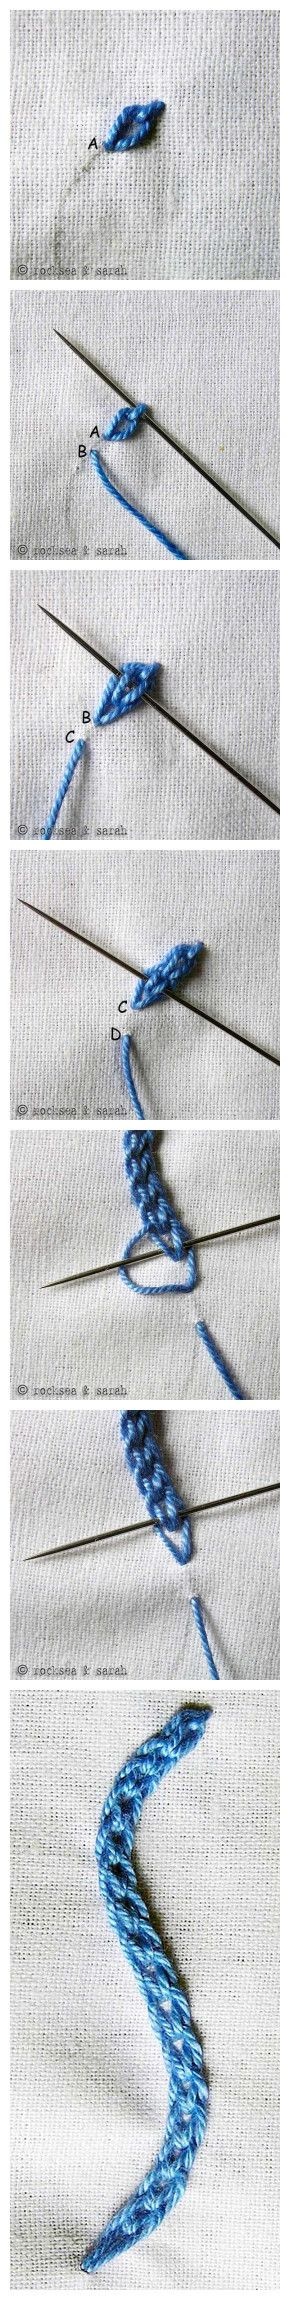 Tutorial. Puntada cadena doble